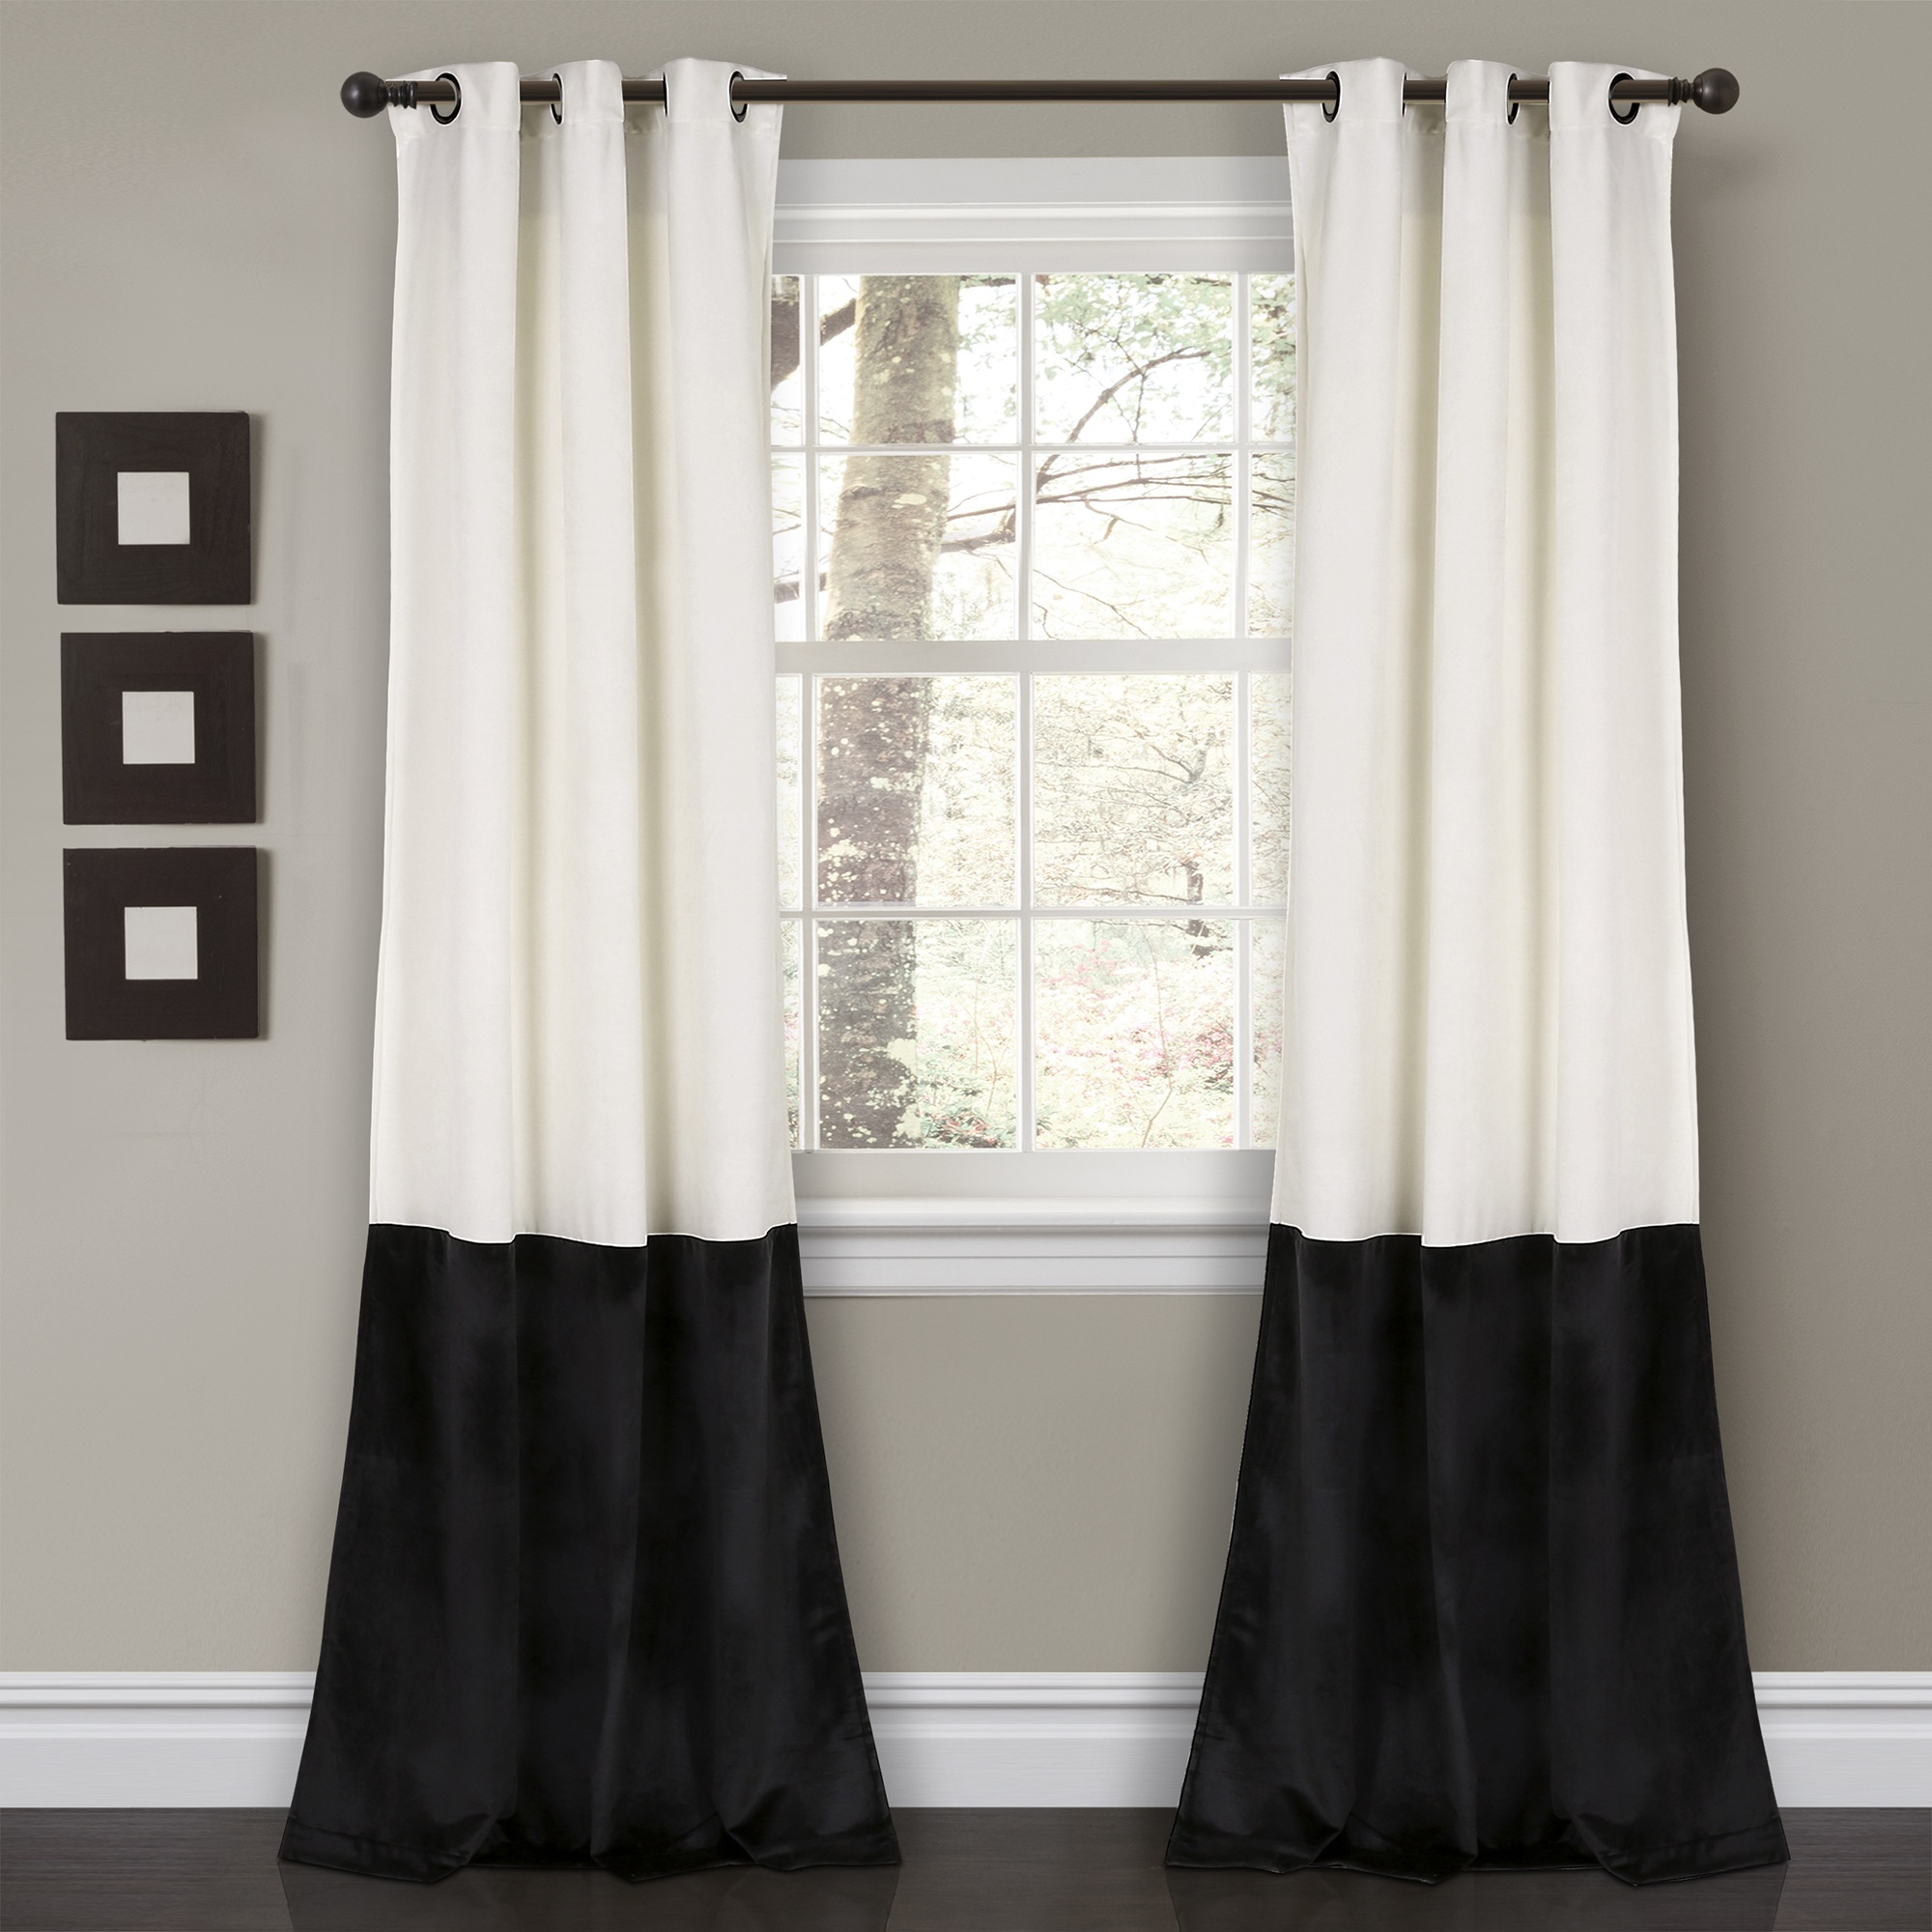 Velvet Room Darkening Window Curtain Set (View 15 of 30)